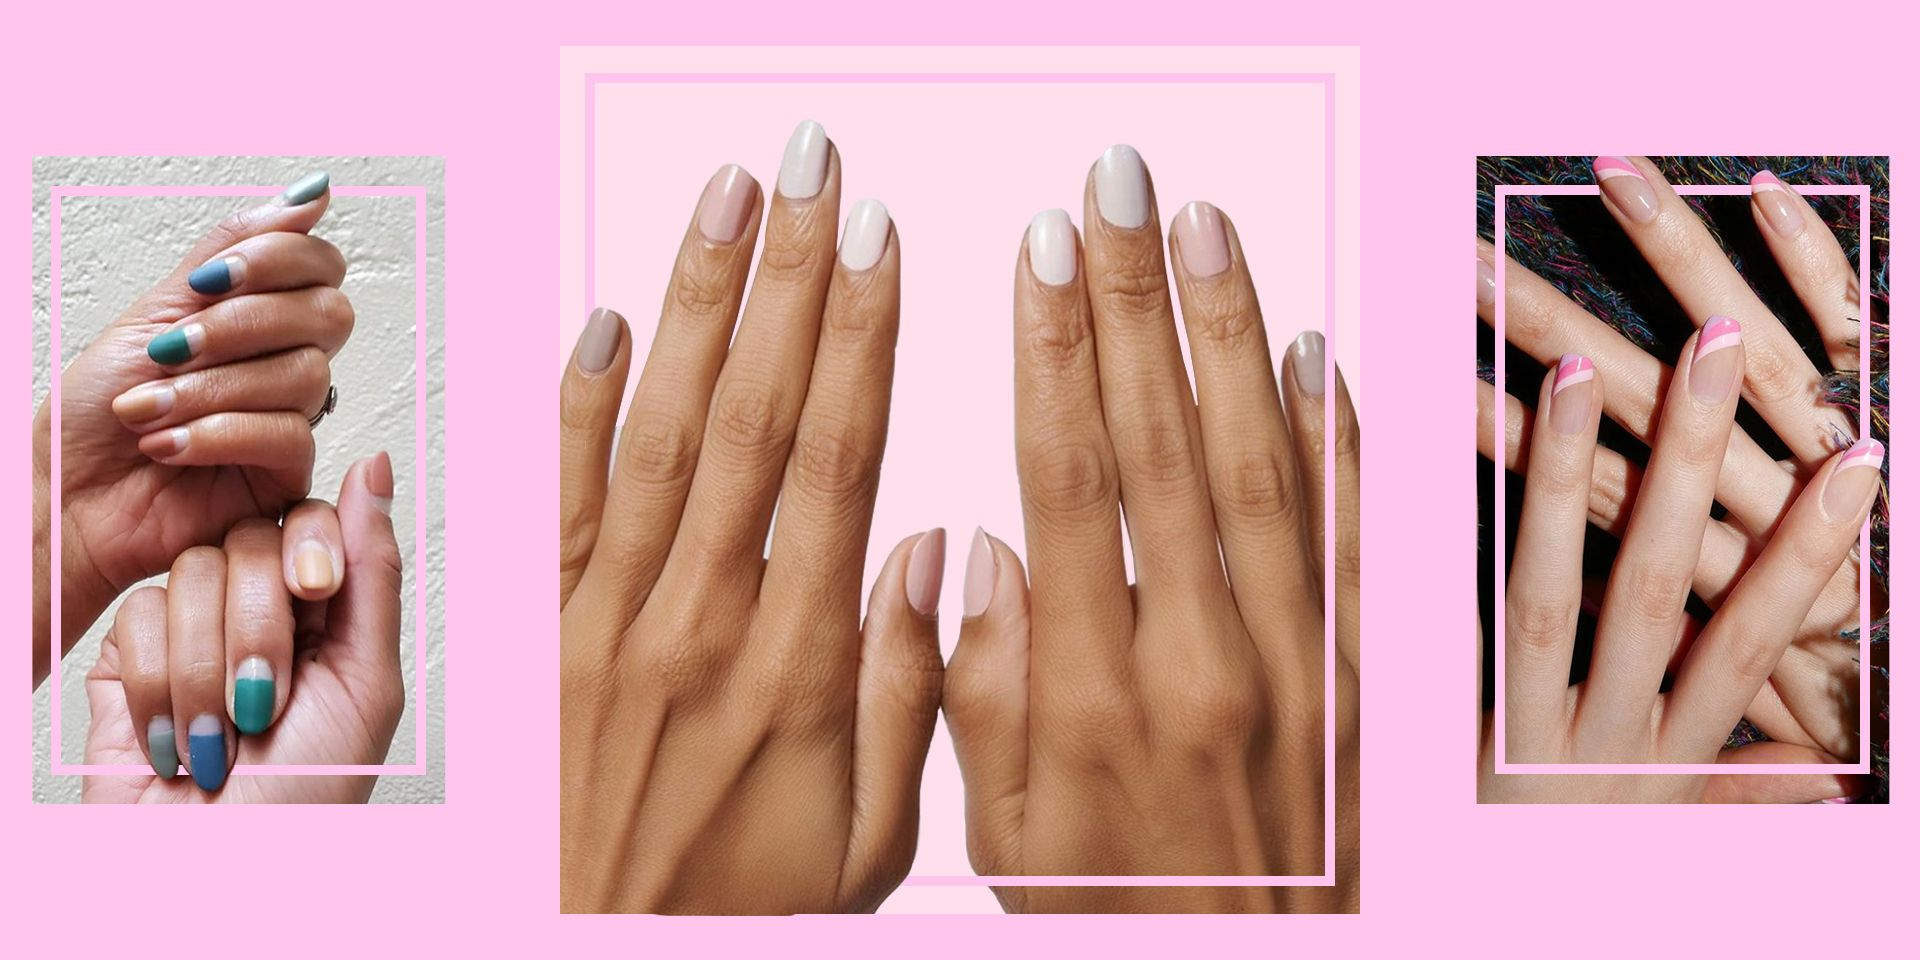 20 Nail Trends for 2020, According to Nail Experts